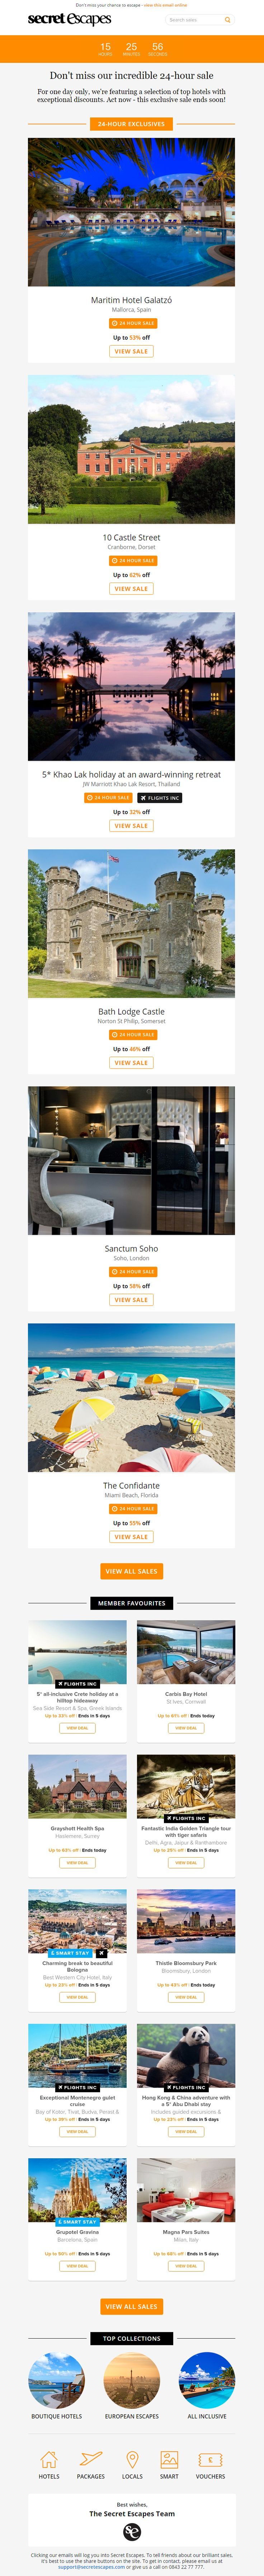 Recommendations email from Secret Escapes with countdown timer to end of sale #EmailMarketing #Email #Marketing #Sale #Recommendations #Travel #Holiday #Countdown #Timer #CountdownTimer